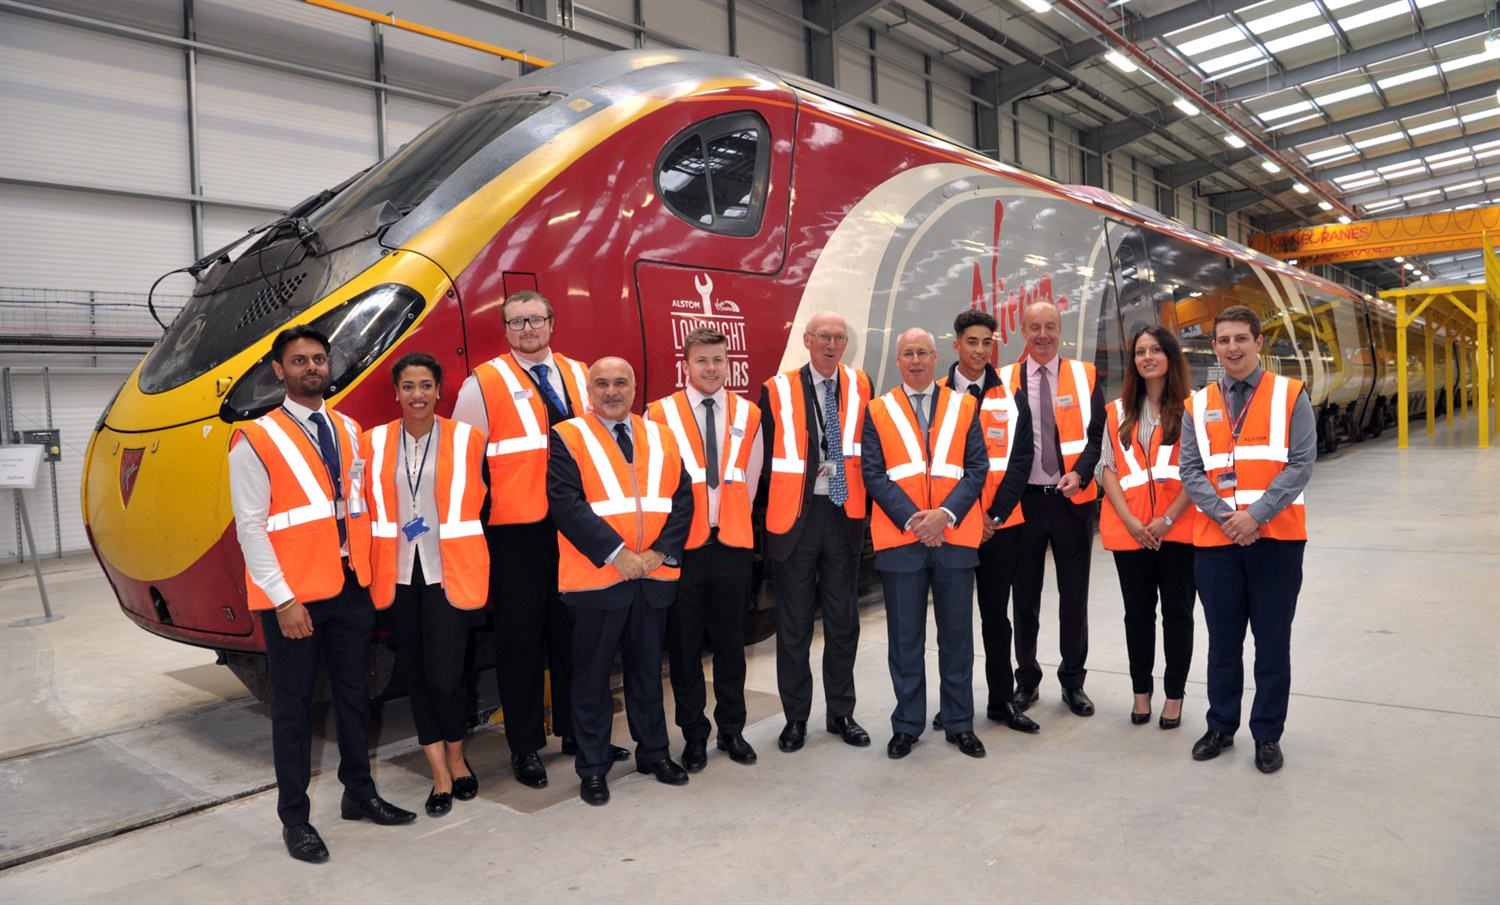 A rail centre fit for the future